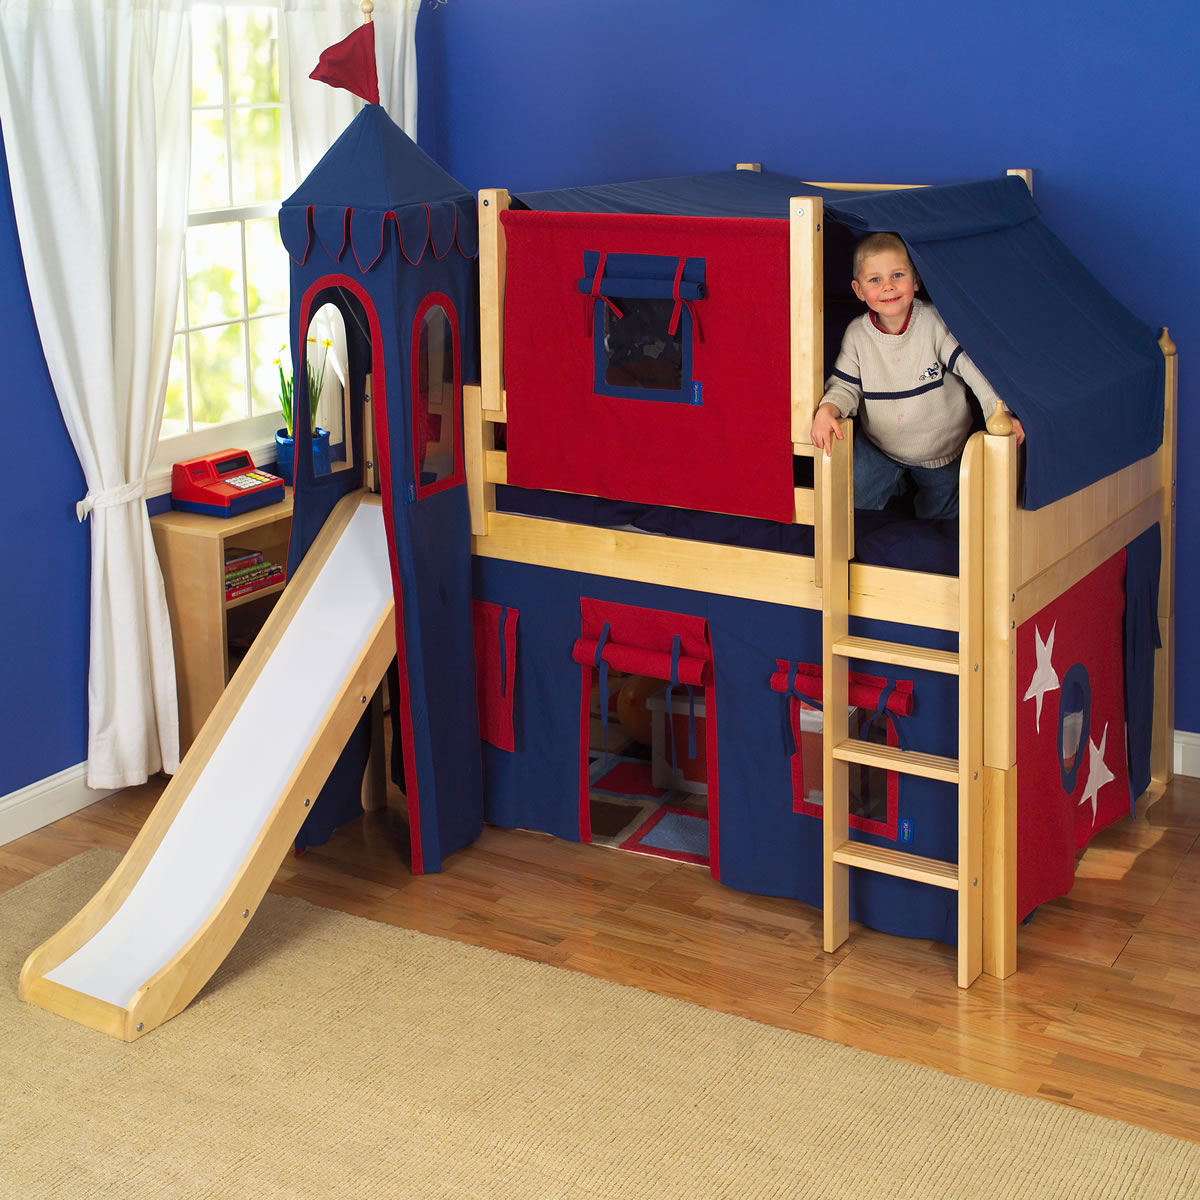 Boys Bunk Beds with Slide for Kids 1200 x 1200